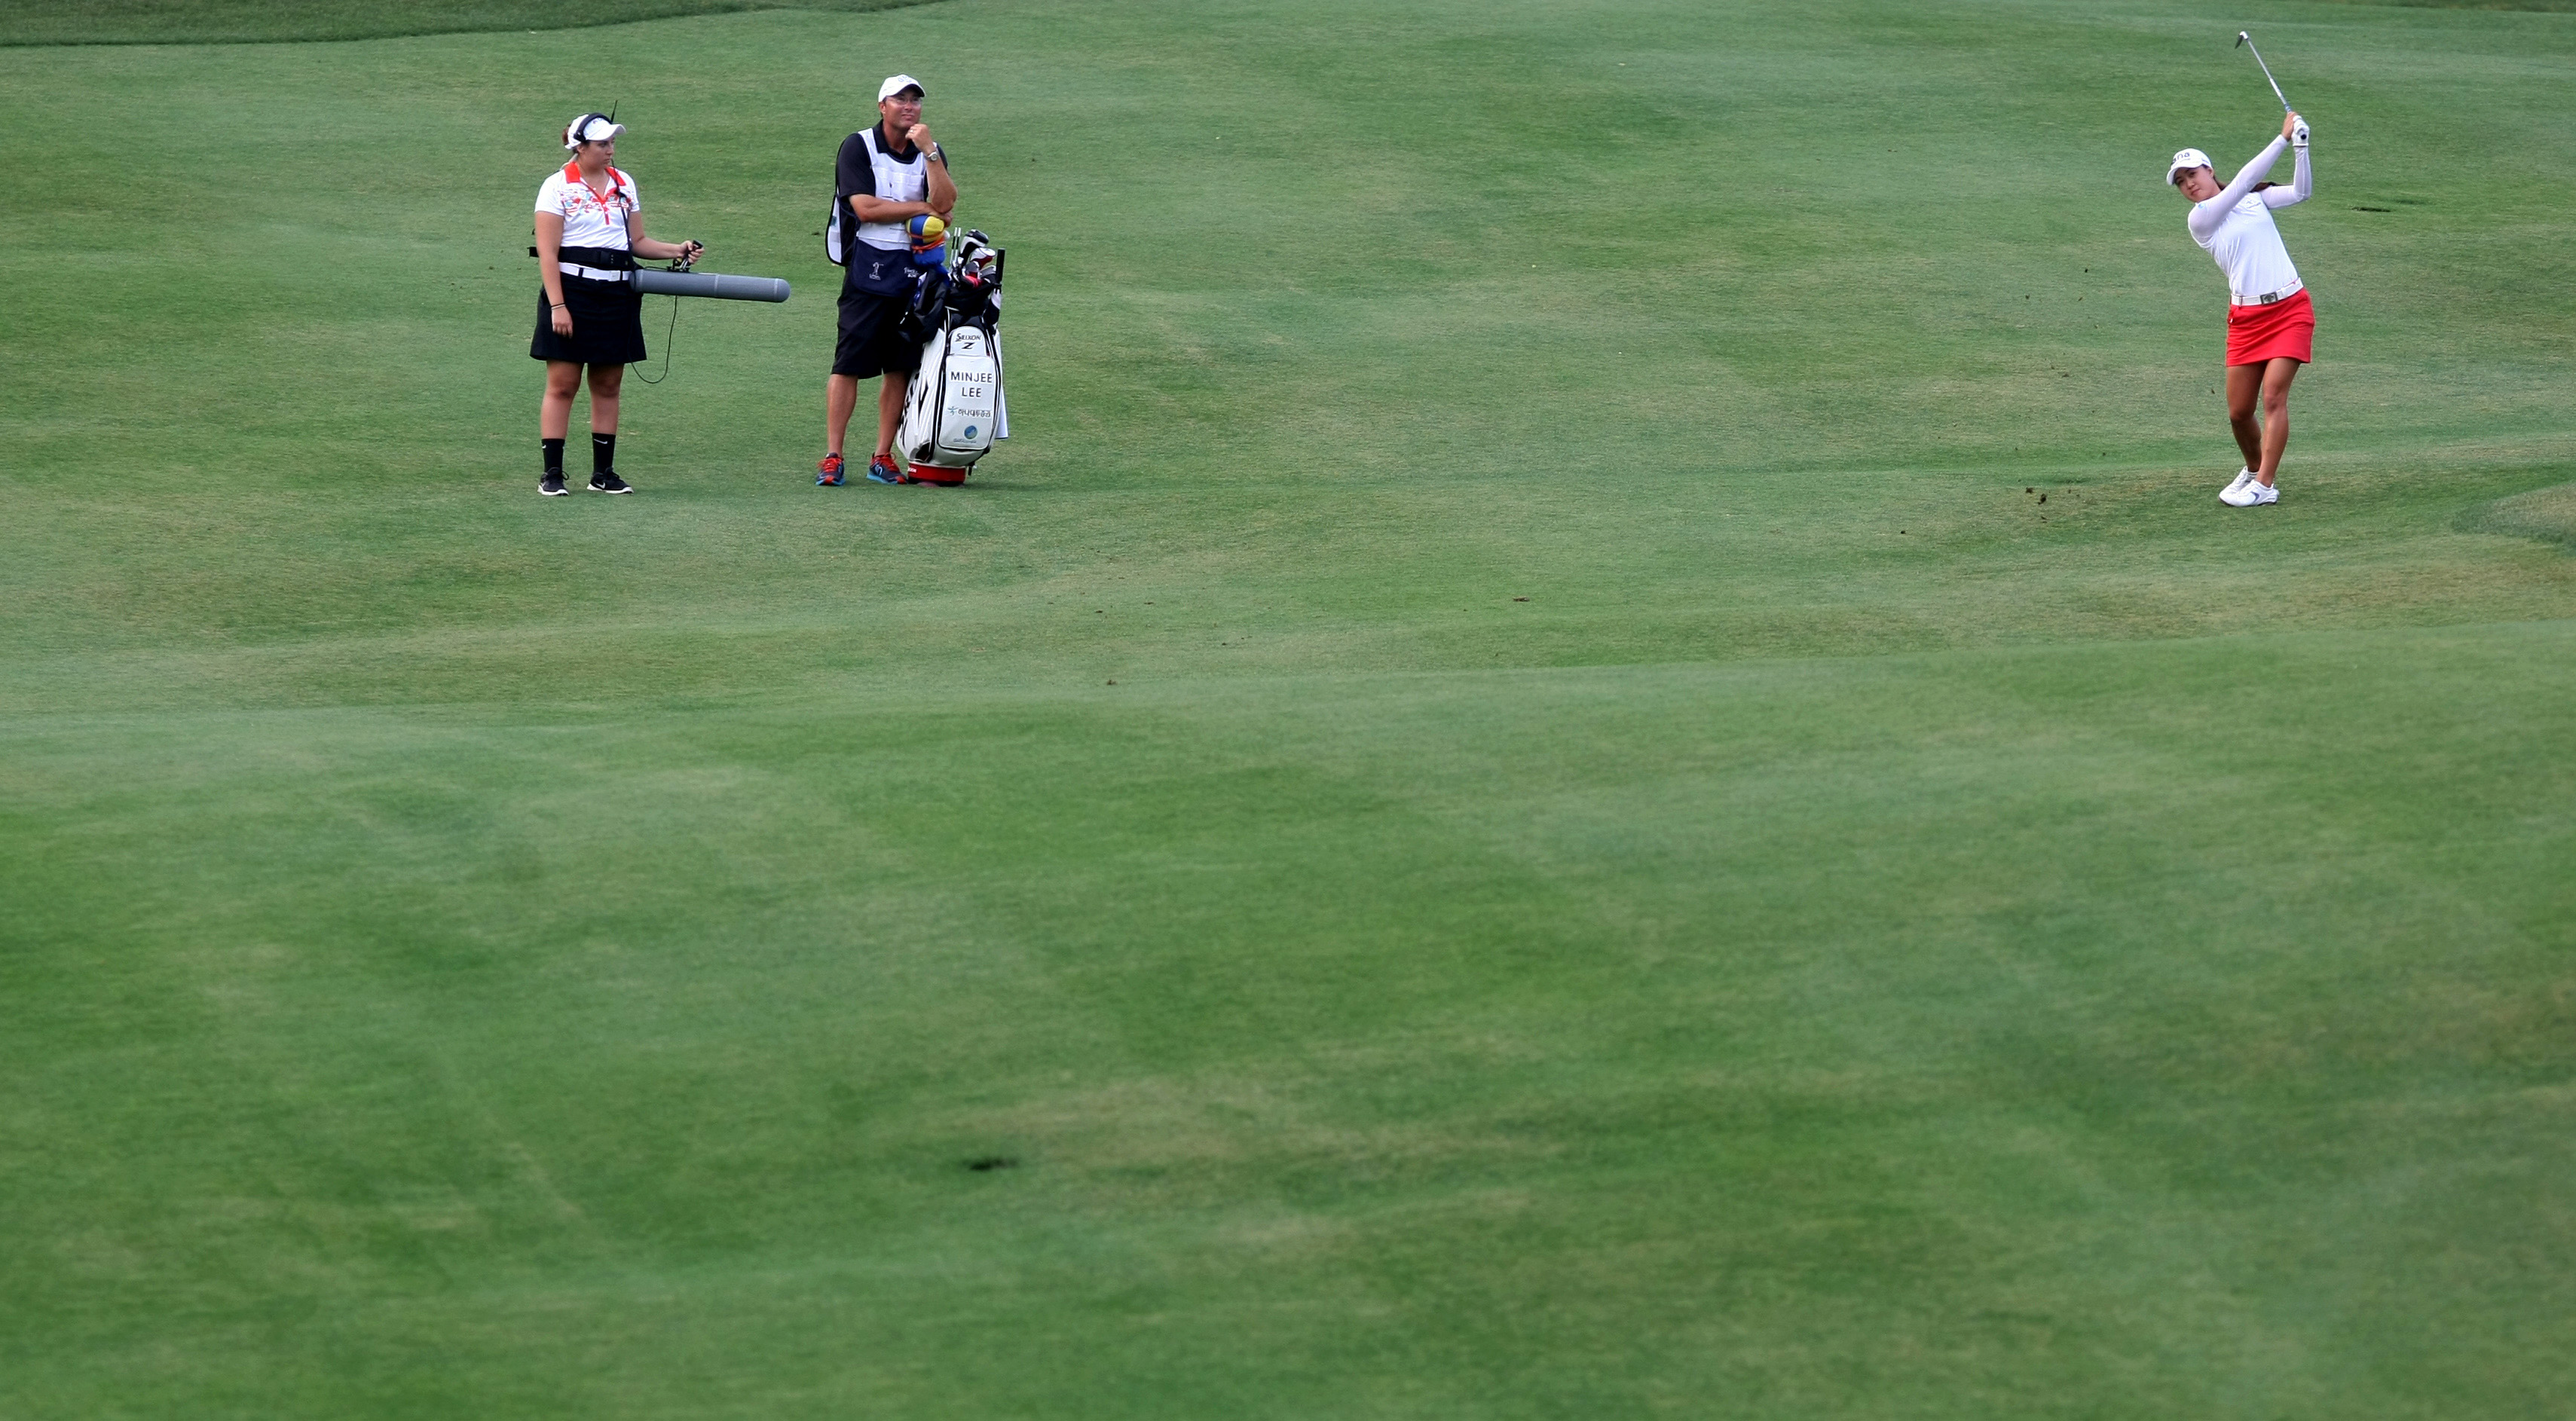 Minjee Lee, right, hits an approach shot on the eighth fairway during the final round of the LPGA Tour's Kingsmill Championship golf tournament on Sunday, May 17, 2015, in Williamsburg, Va. (AP Photo/Jason Hirschfeld)